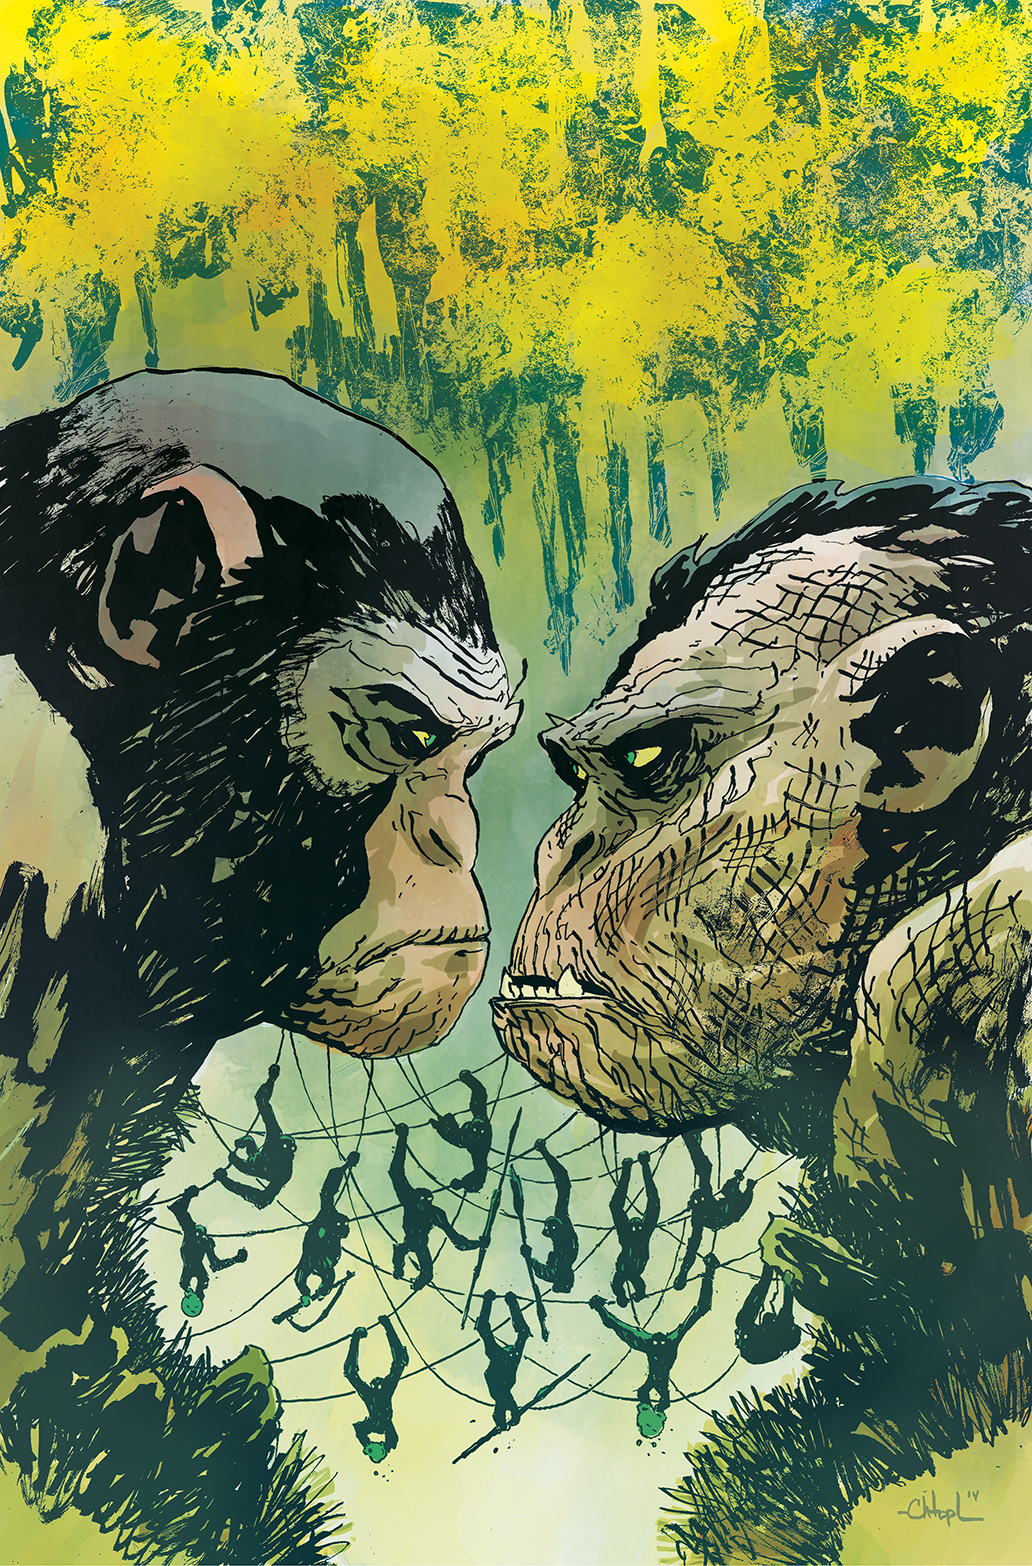 BOOM_Dawn_of_the_Planet_of_the_Apes_005_A